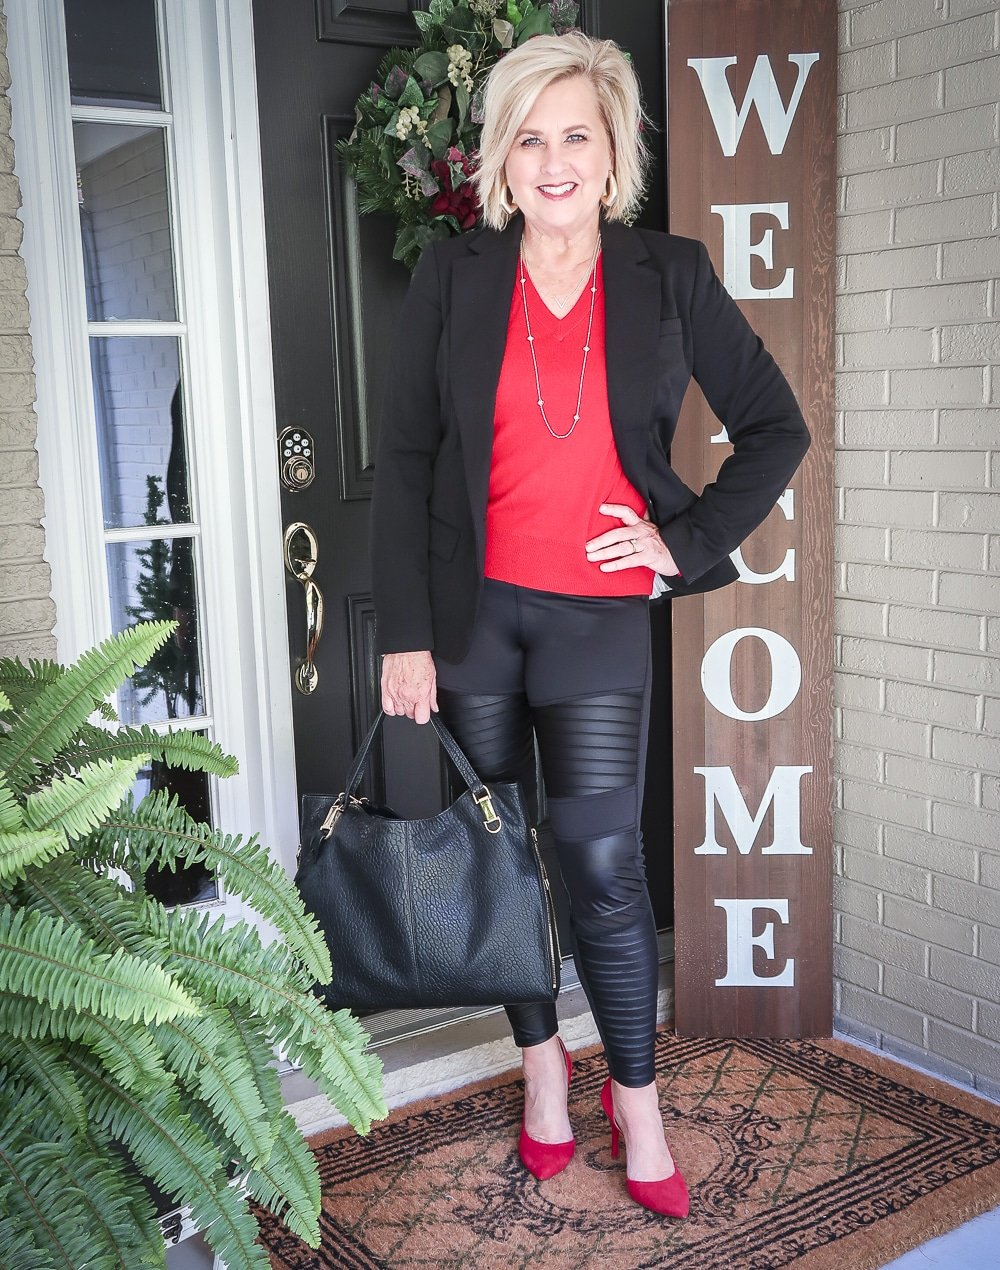 Fashion Blogger 50 Is Not Old is looking modern and edgy in this pair of black faux leather moto leggings, red v-neck sweater and red pumps